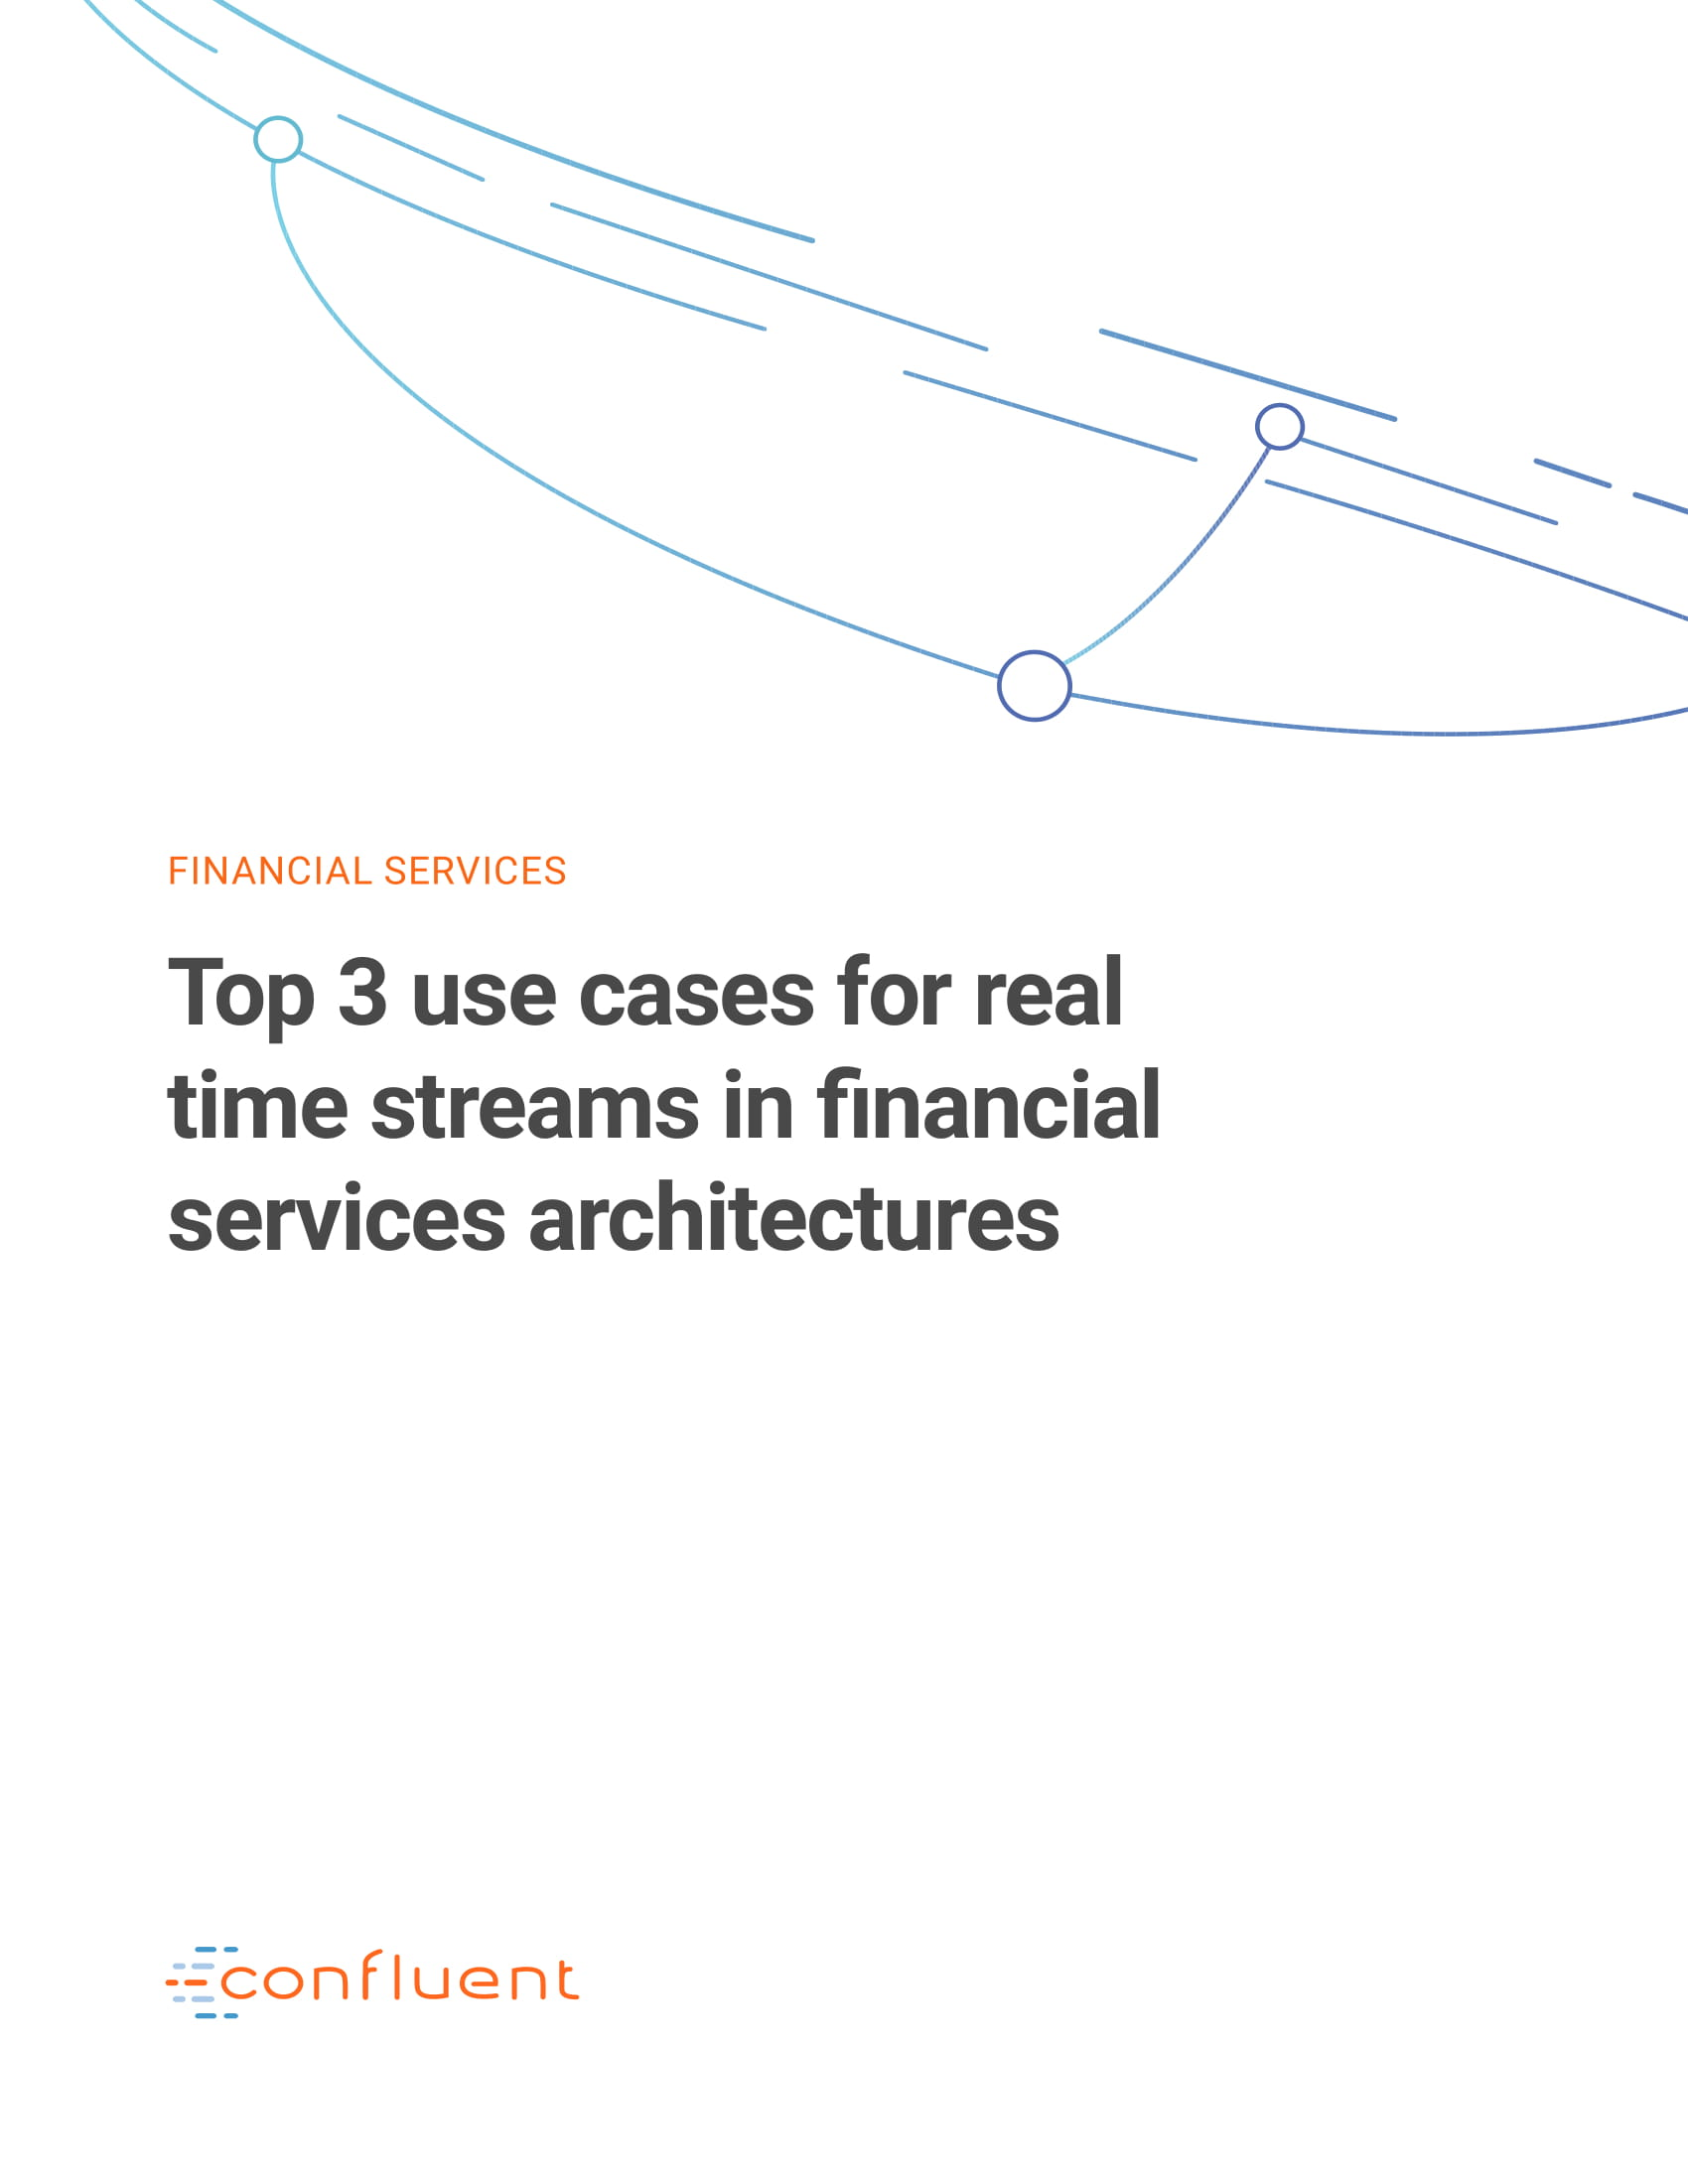 Top 3 Streaming Use Cases for Real Time Streams in Financial Services Architectures